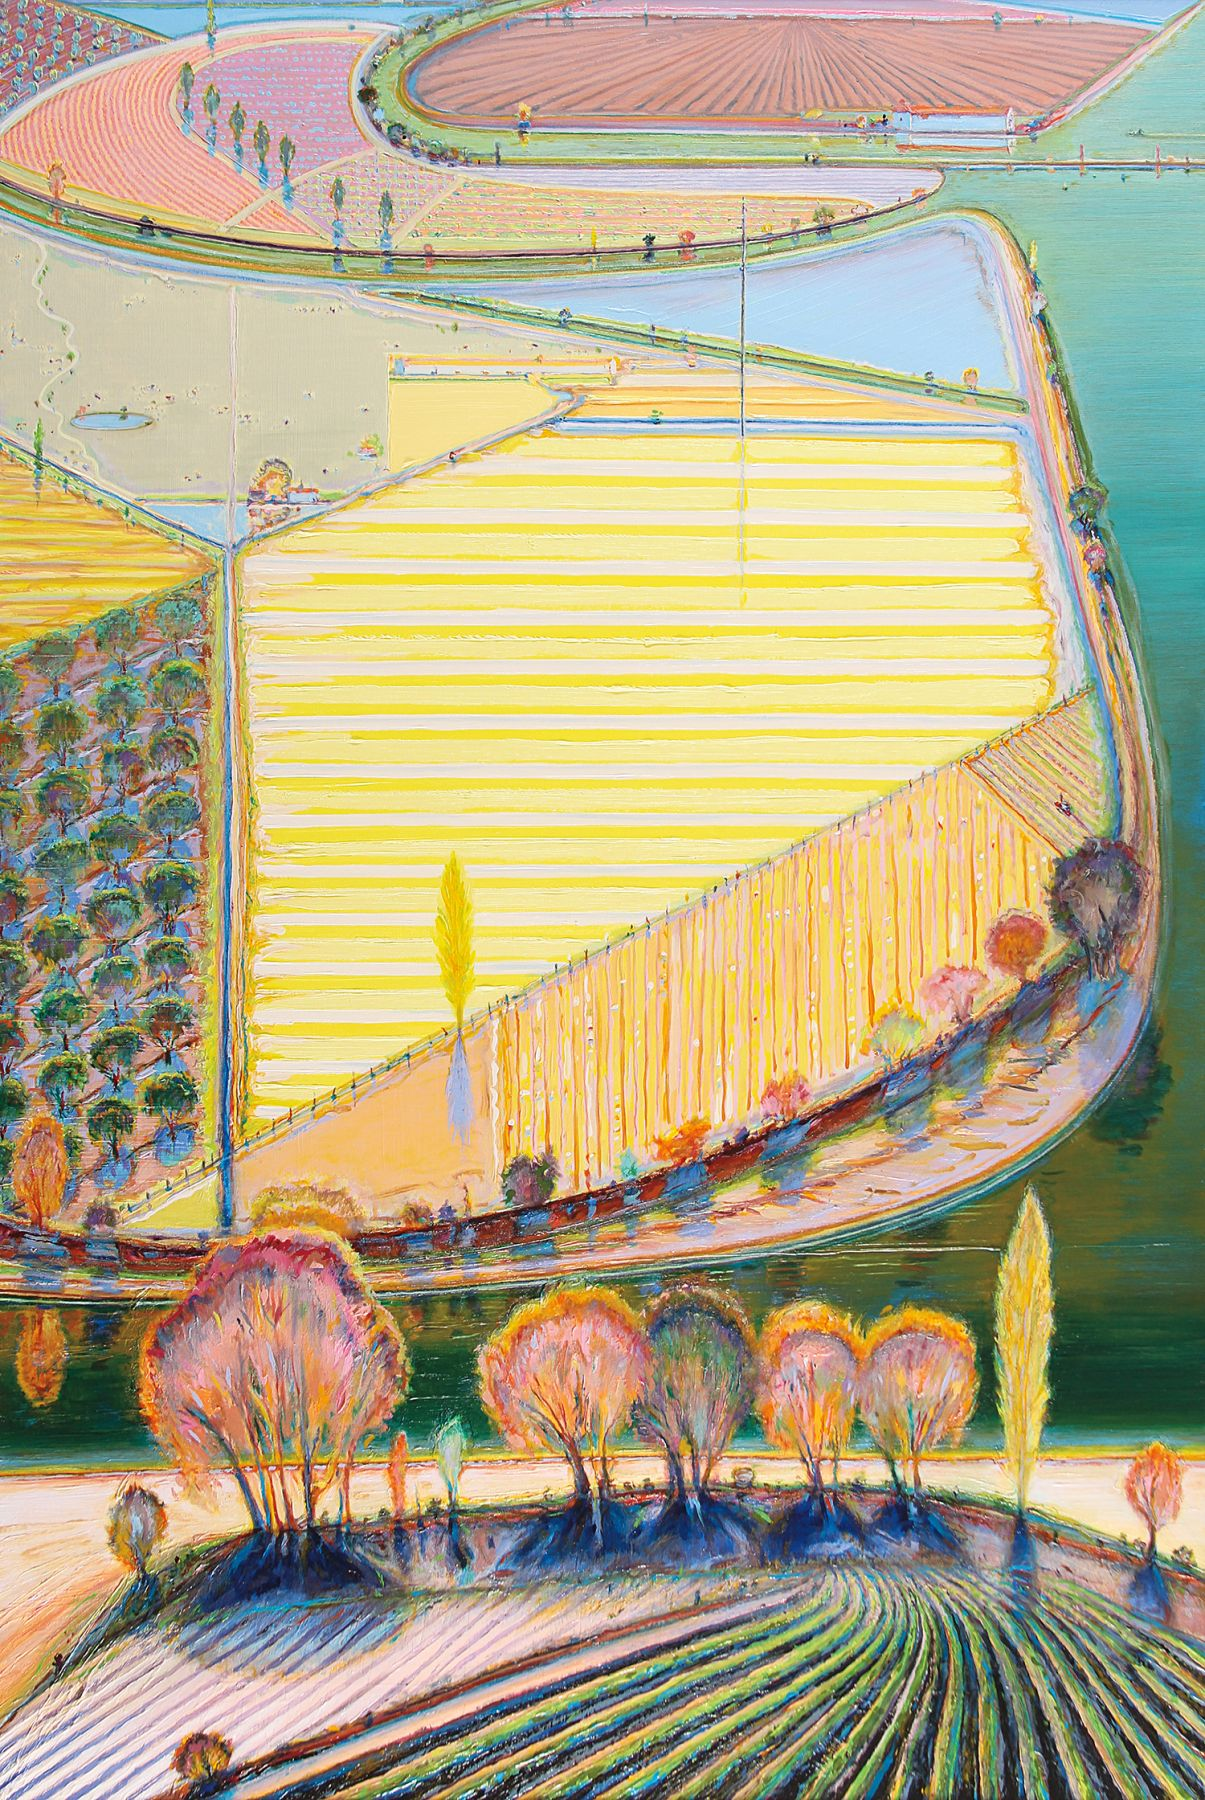 Wayne Thiebaud, Green River Lands, 1998, Oil on canvas, 72 x 48 inches